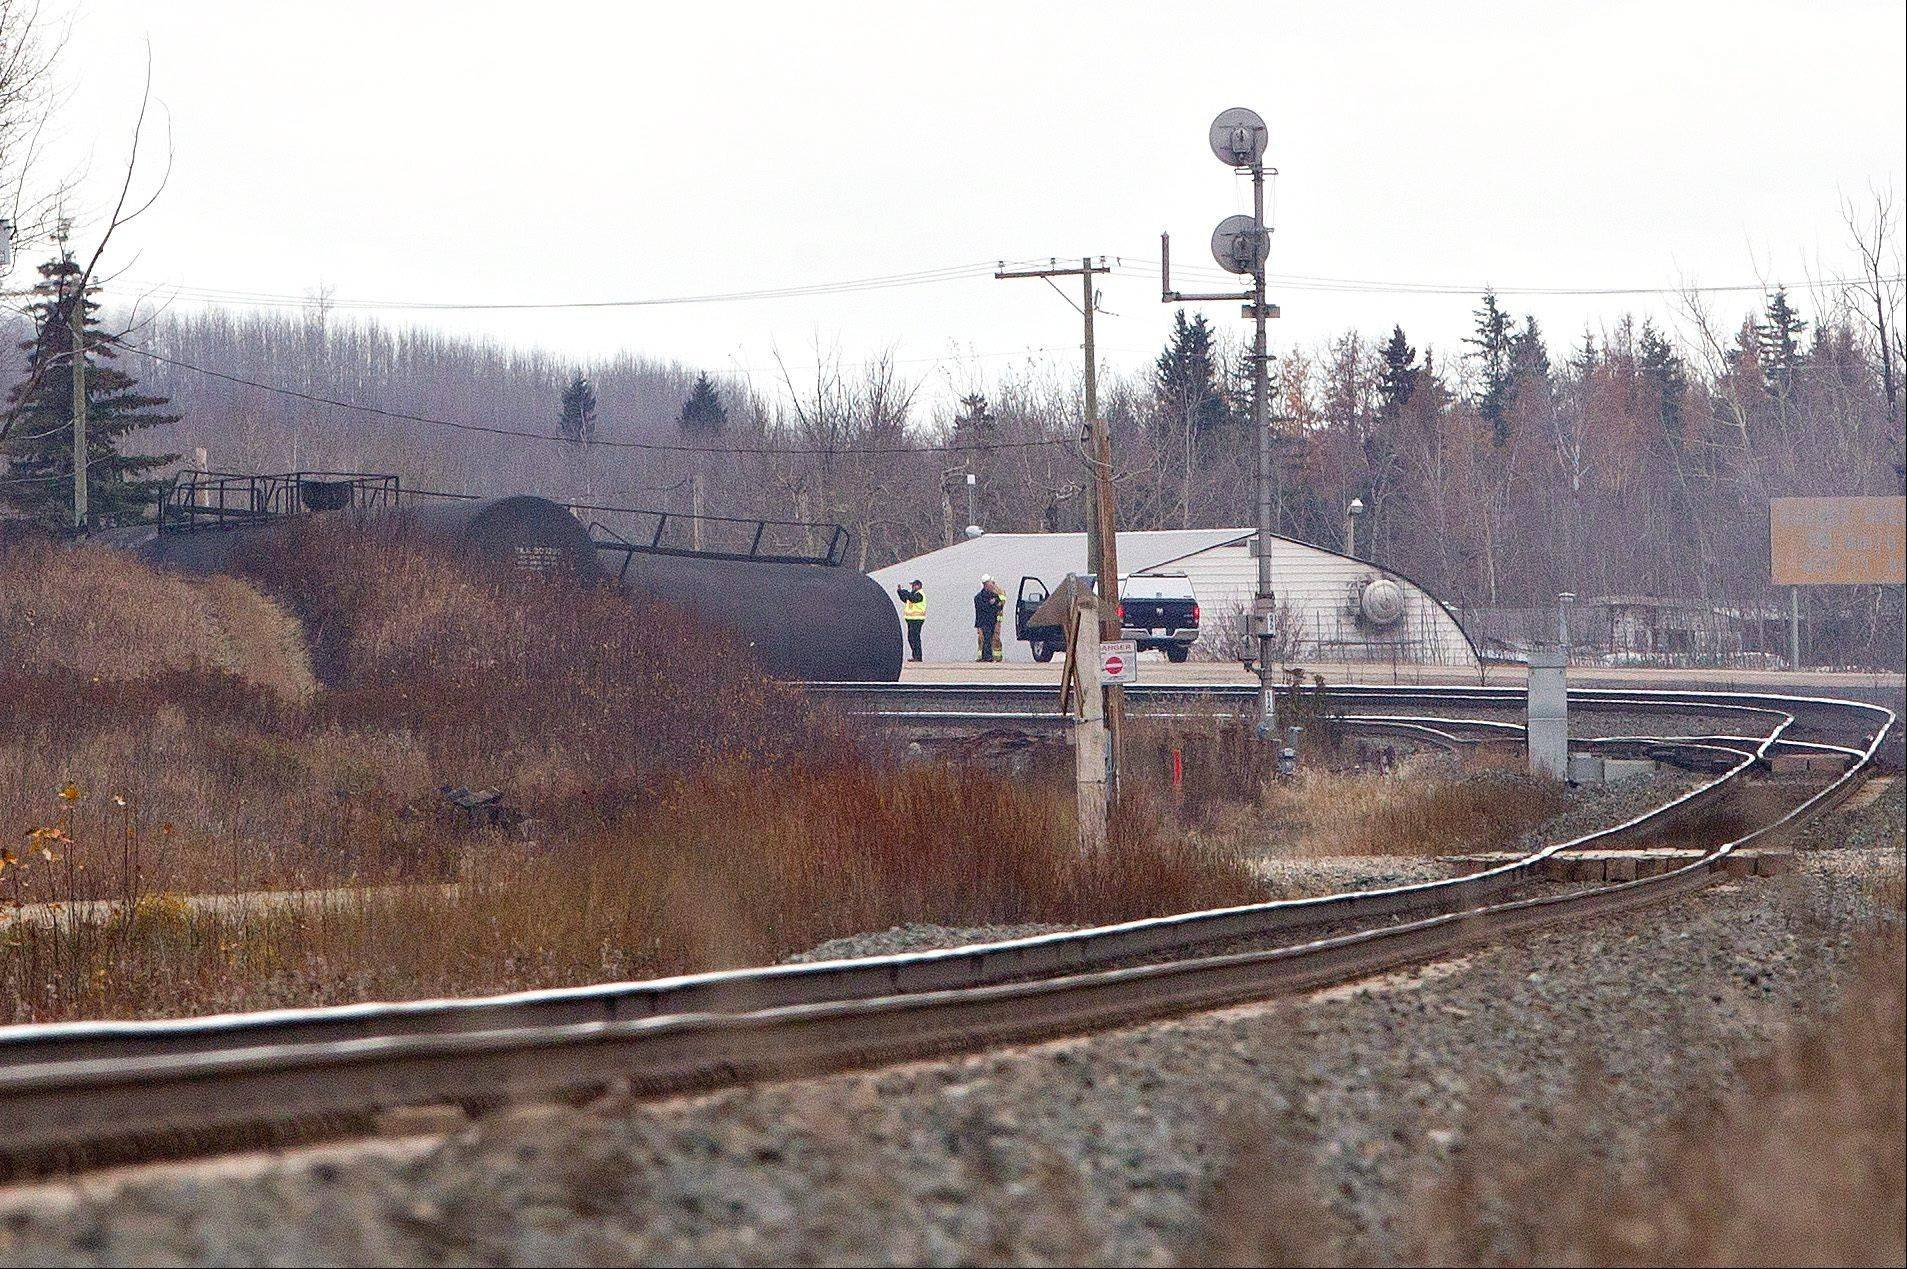 Emergency crews work at the scene of a train derailment near Gainford, Alberta, Canada, on Saturday. Canadian National spokesman Louis-Antoine Paquin said 13 cars -- four carrying petroleum crude oil and nine loaded with liquefied petroleum gas -- came off the tracks around 1 a.m. local time about 50 miles (80 kilometers) from Edmonton. The entire community of roughly 100 people was evacuated.